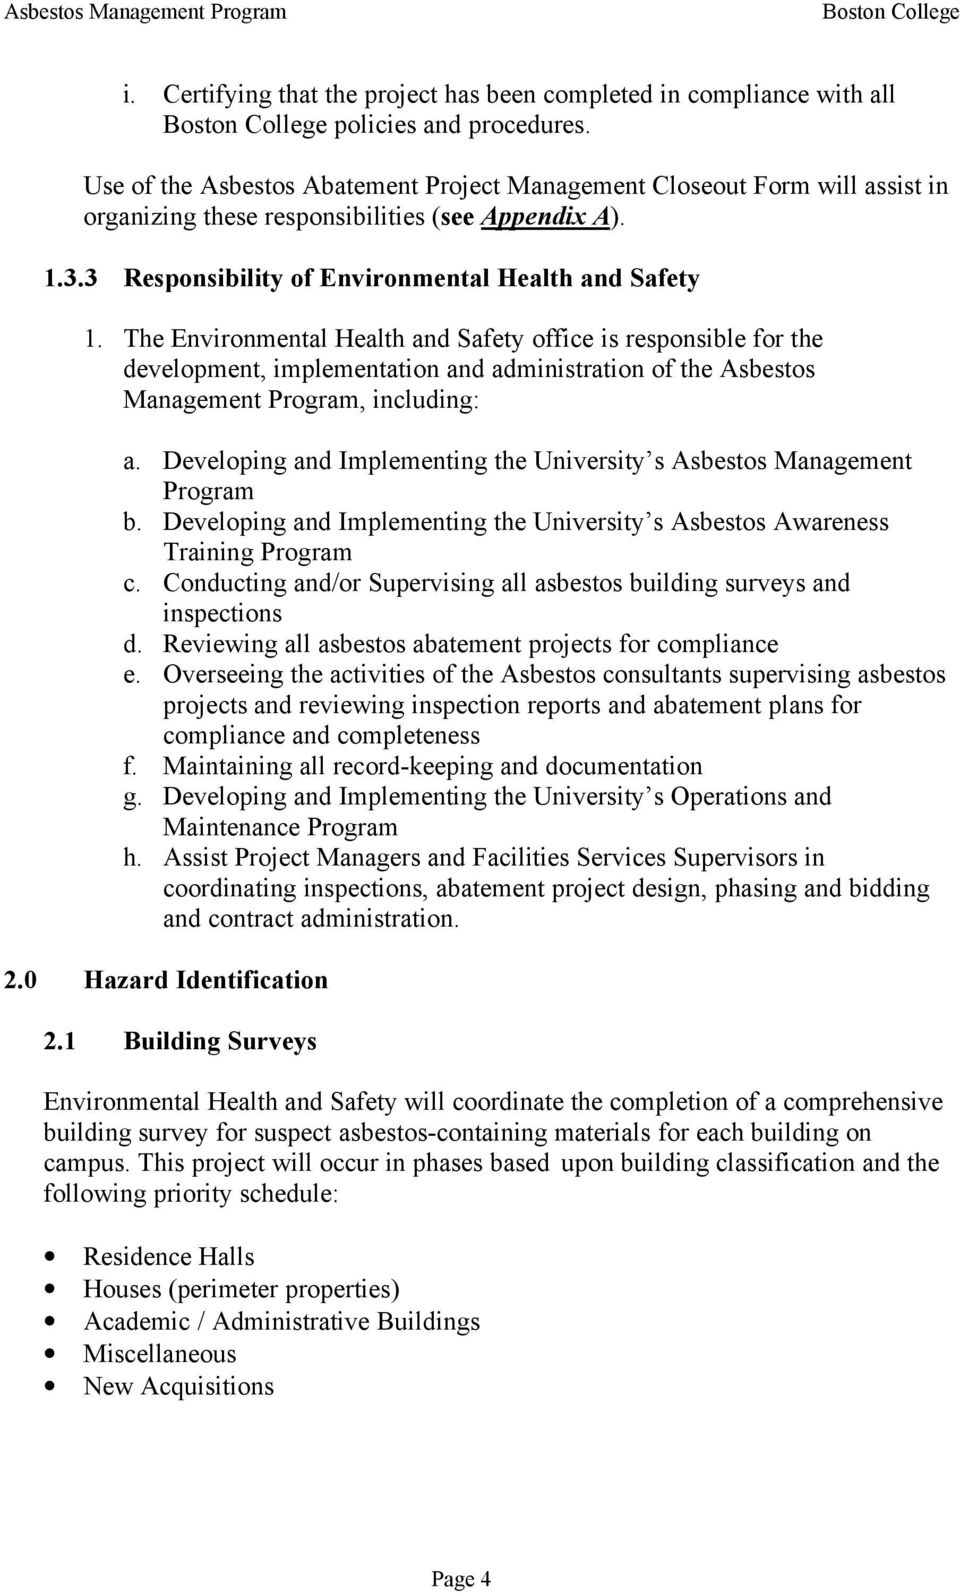 The Environmental Health and Safety office is responsible for the development, implementation and administration of the Asbestos Management Program, including: a.